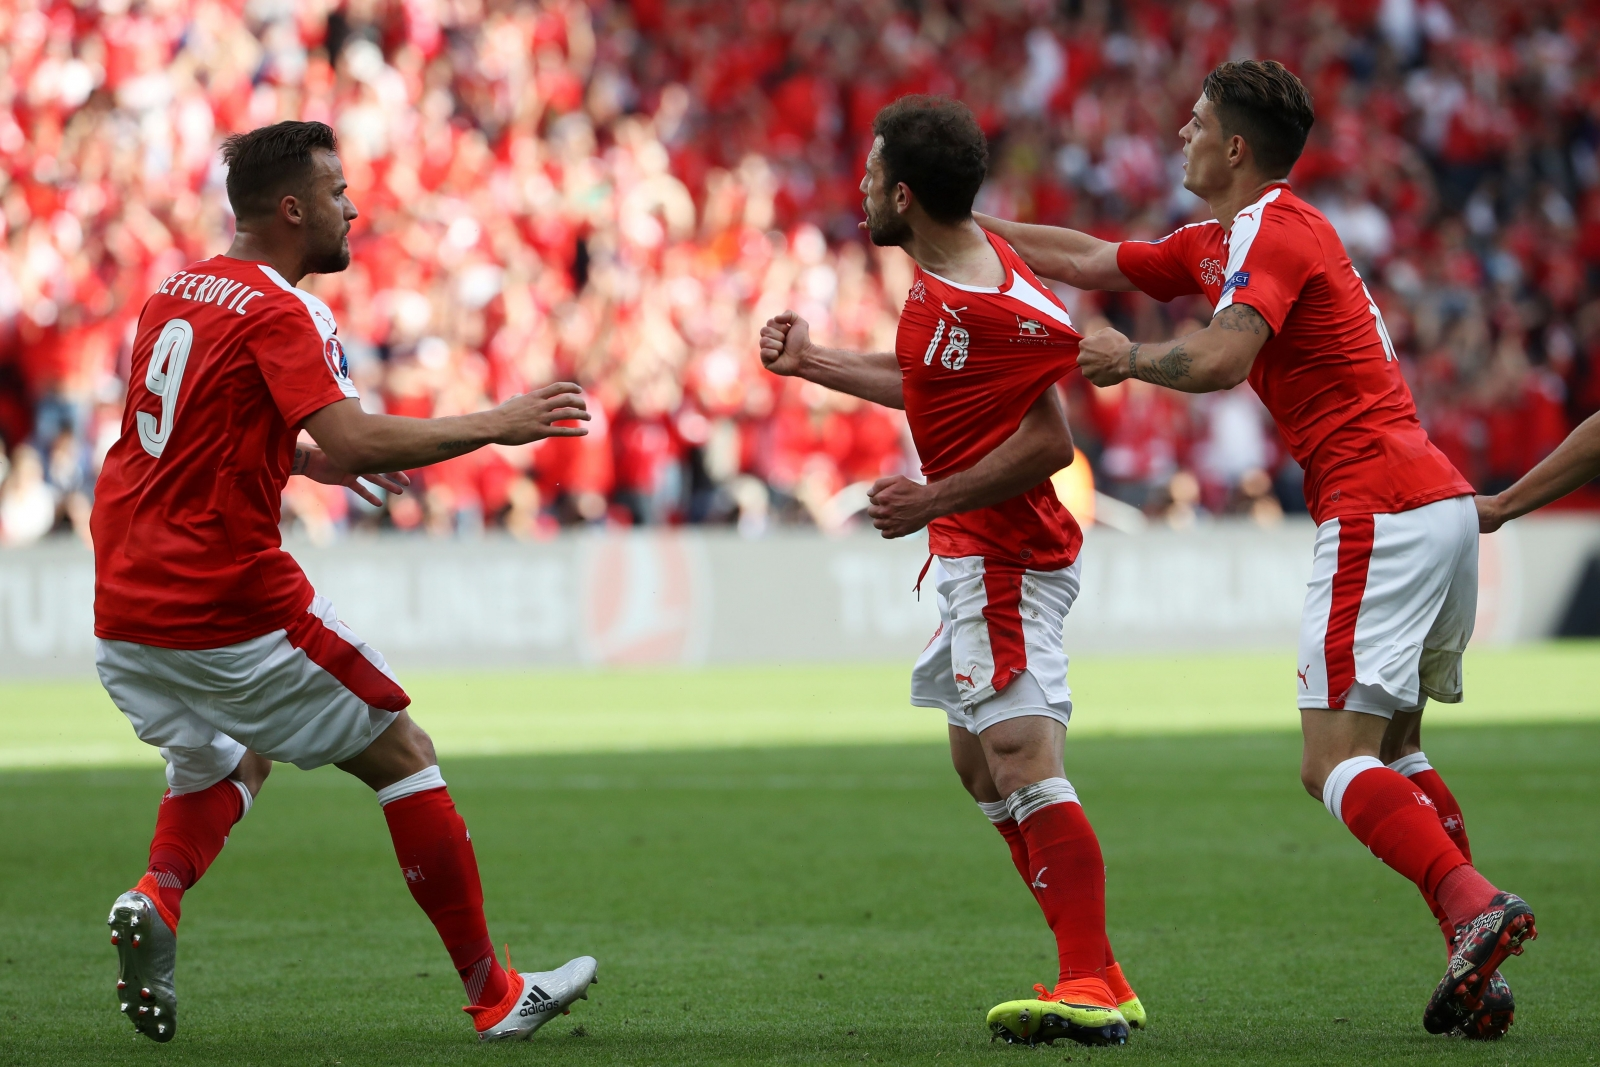 Swiss players celebrating their goal